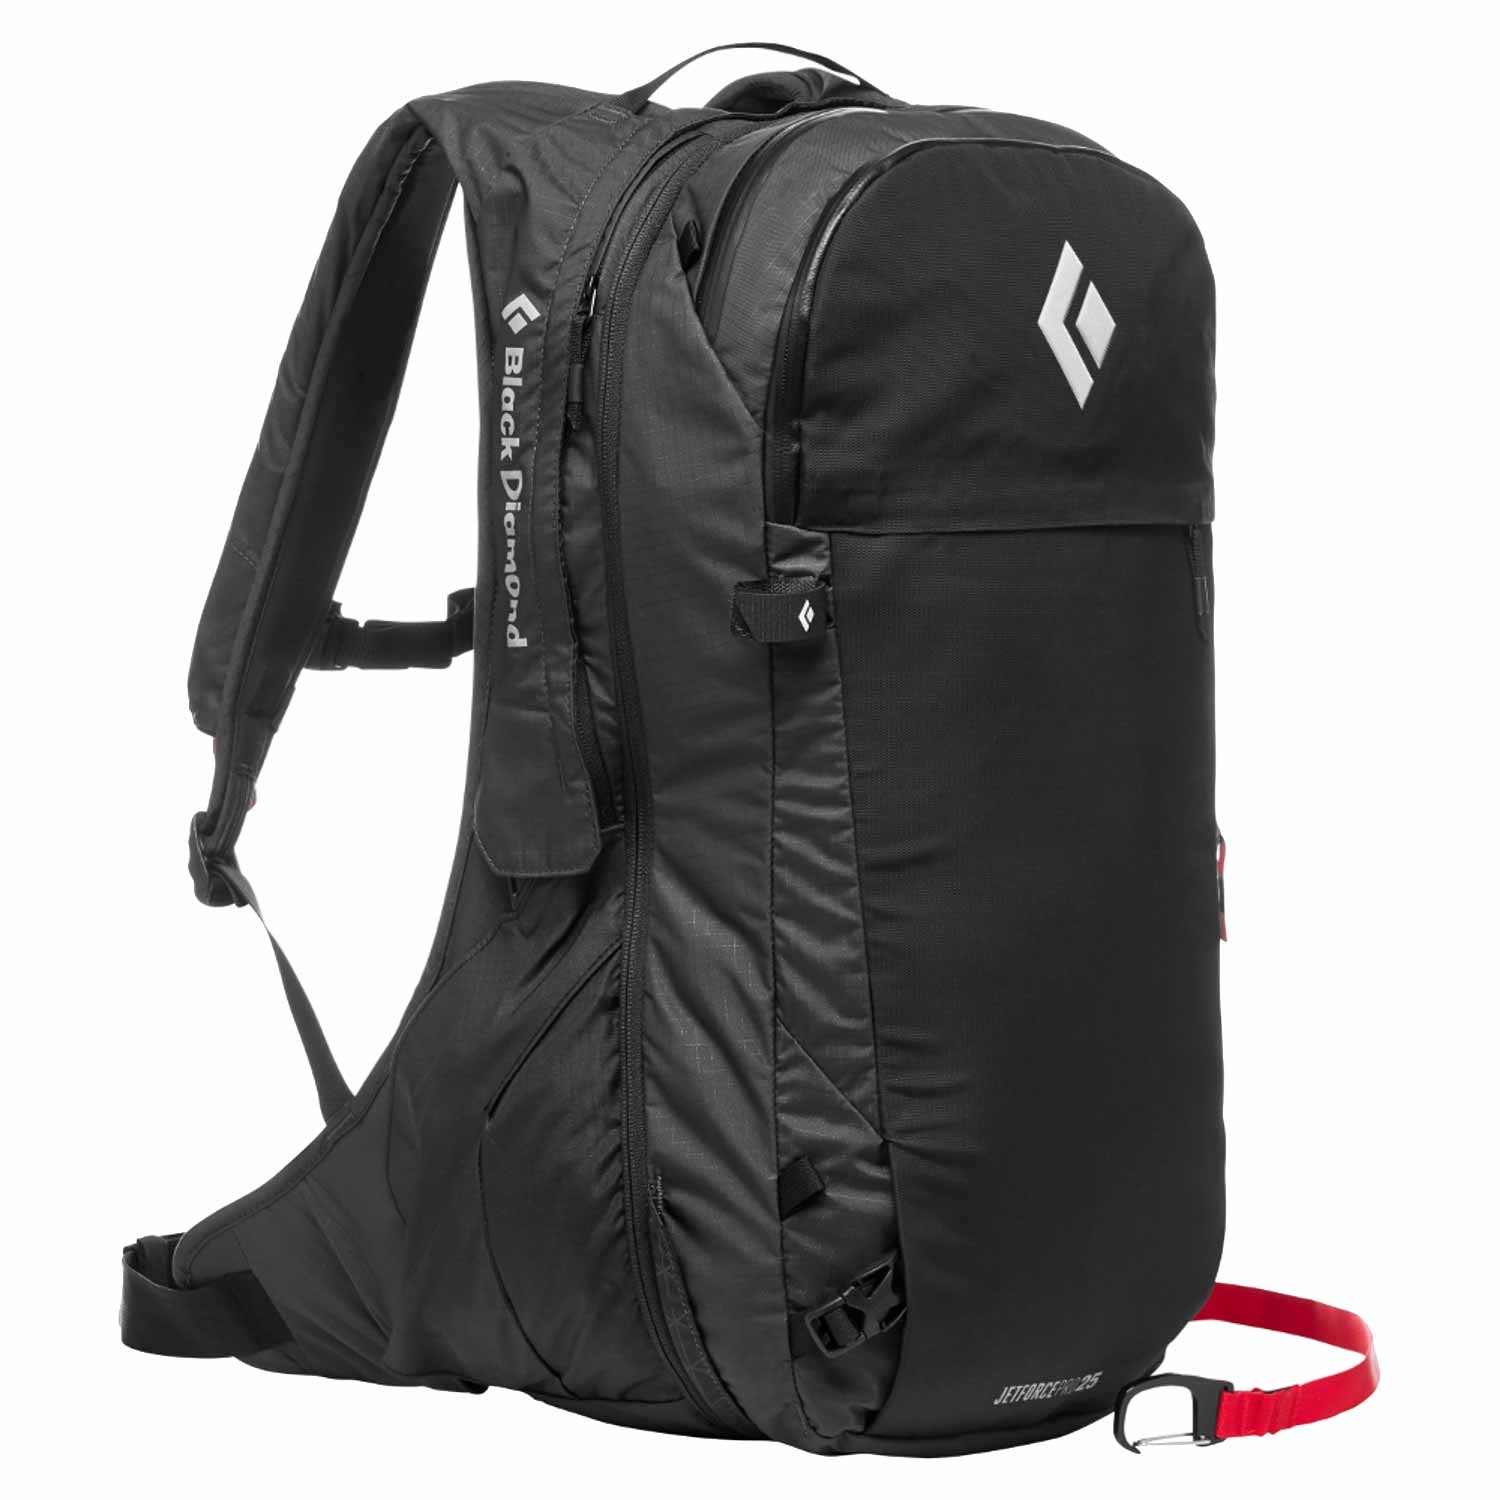 Black Diamond Jetforce Pro 25L Pack Avalanche Airbag Black 2020